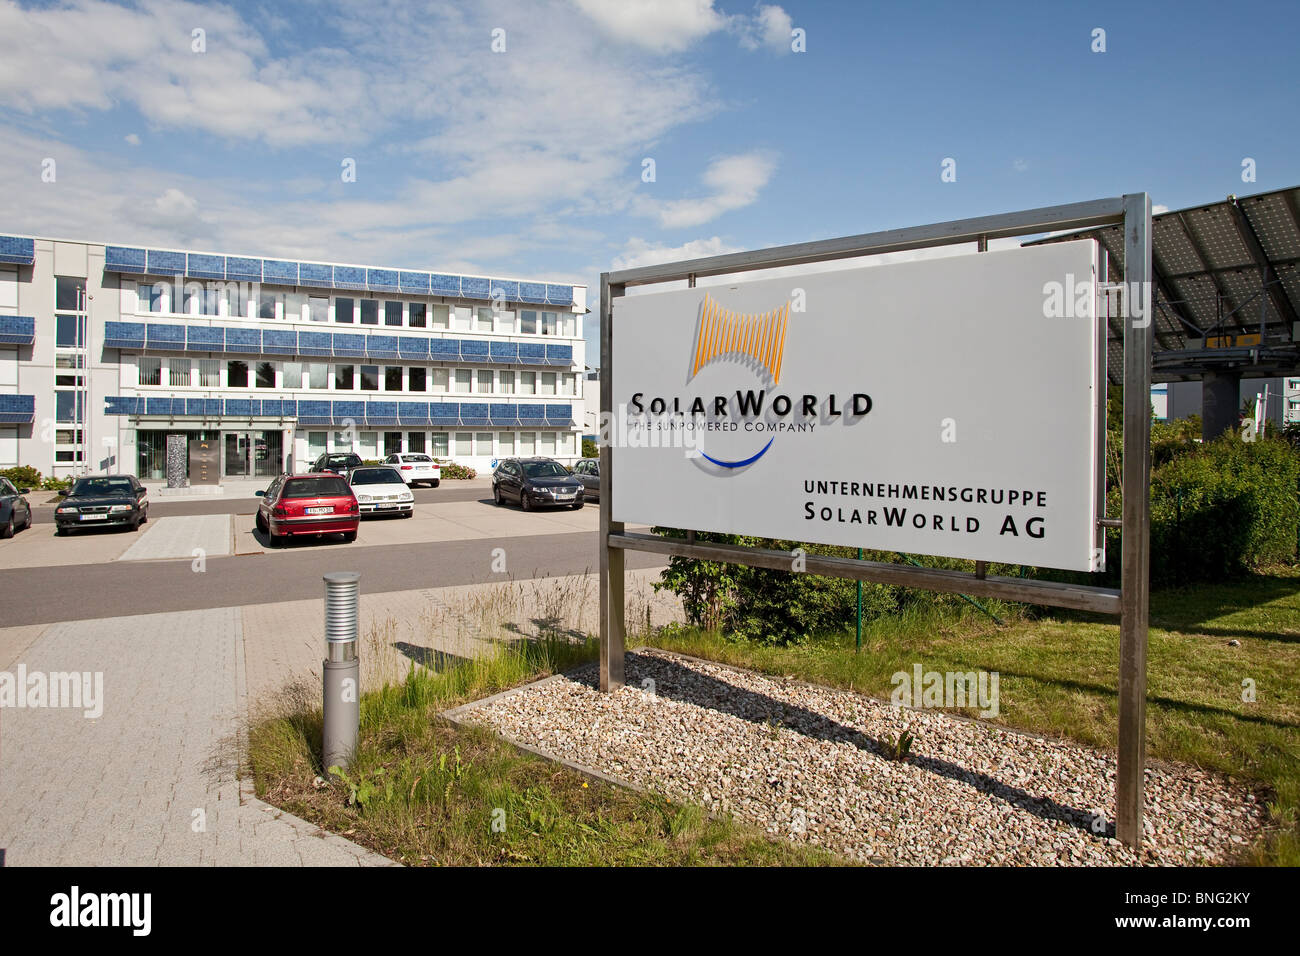 SolarWorld AG: production site for solar cells and solar panels in Freiberg, Germany - Stock Image